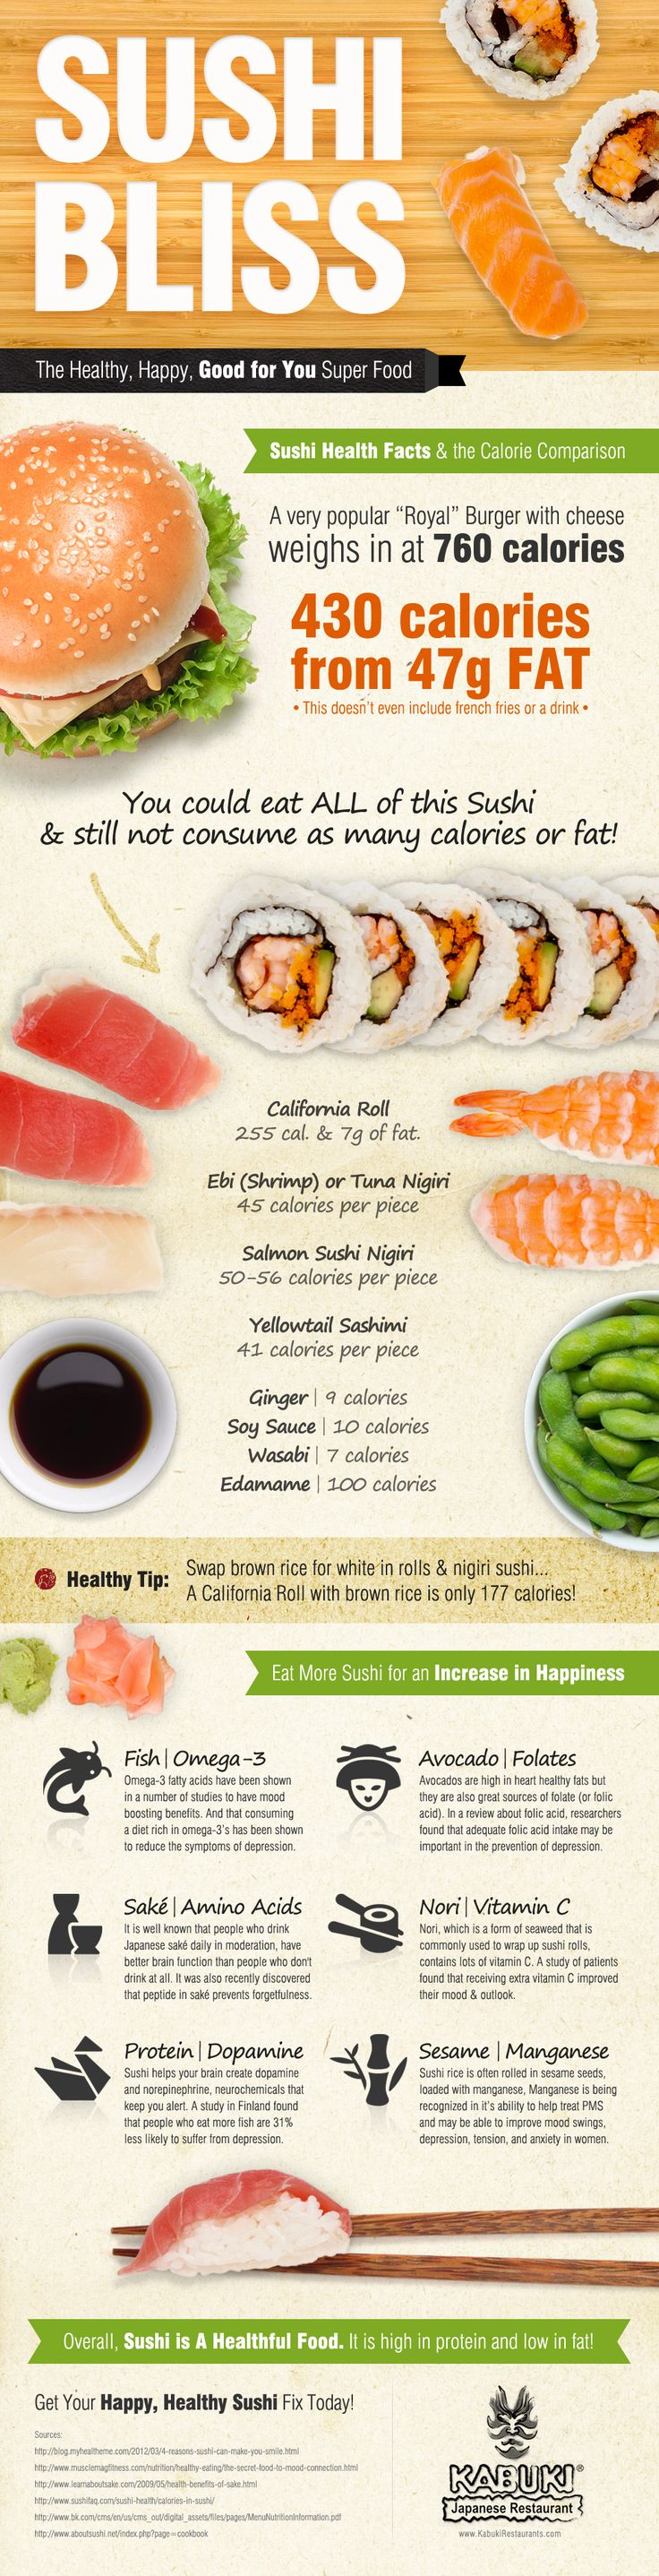 How Healthy Is Sushi? #Infographic #Health #sushi Brought to you by SunGoddess Magazine: Igniting the Powerful Goddess WIthin http://sungoddessmagazine.com